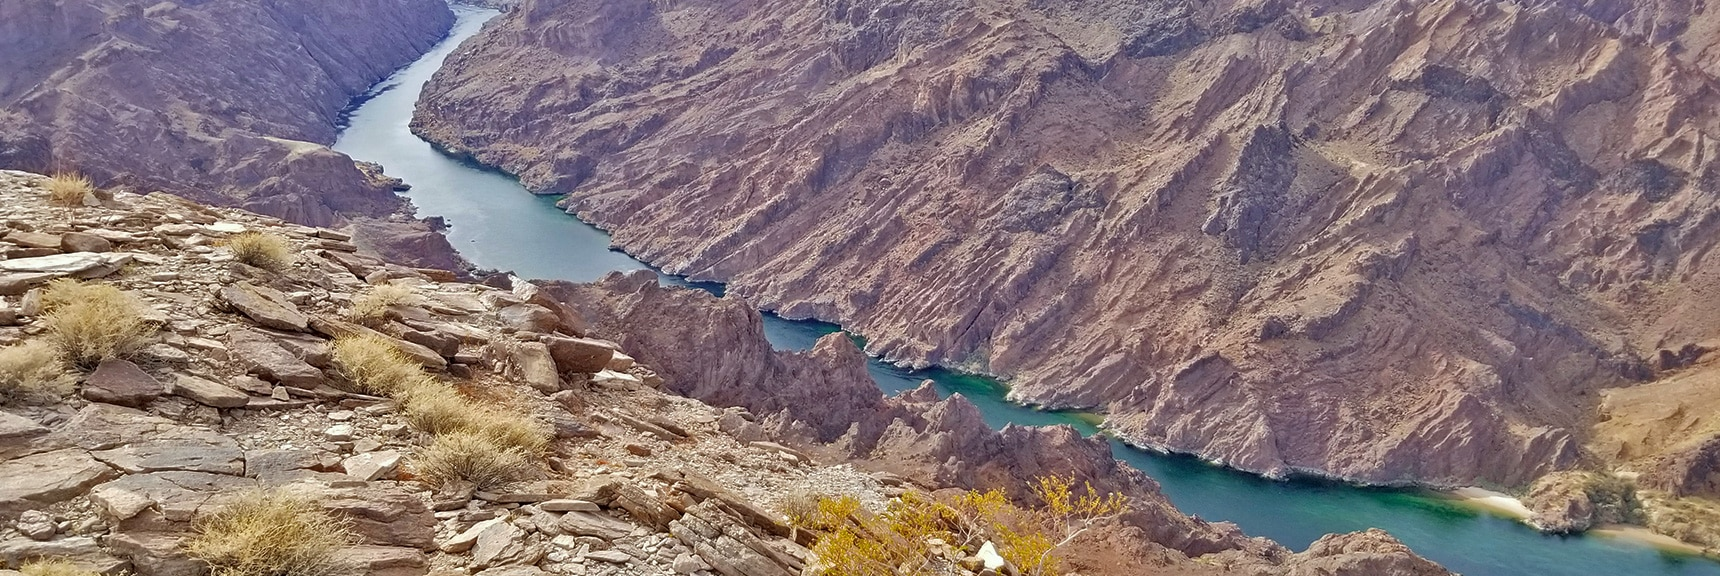 Southern View of Colorado River from Overlook | Arizona Hot Spring | Liberty Bell Arch | Lake Mead National Recreation Area, Arizona